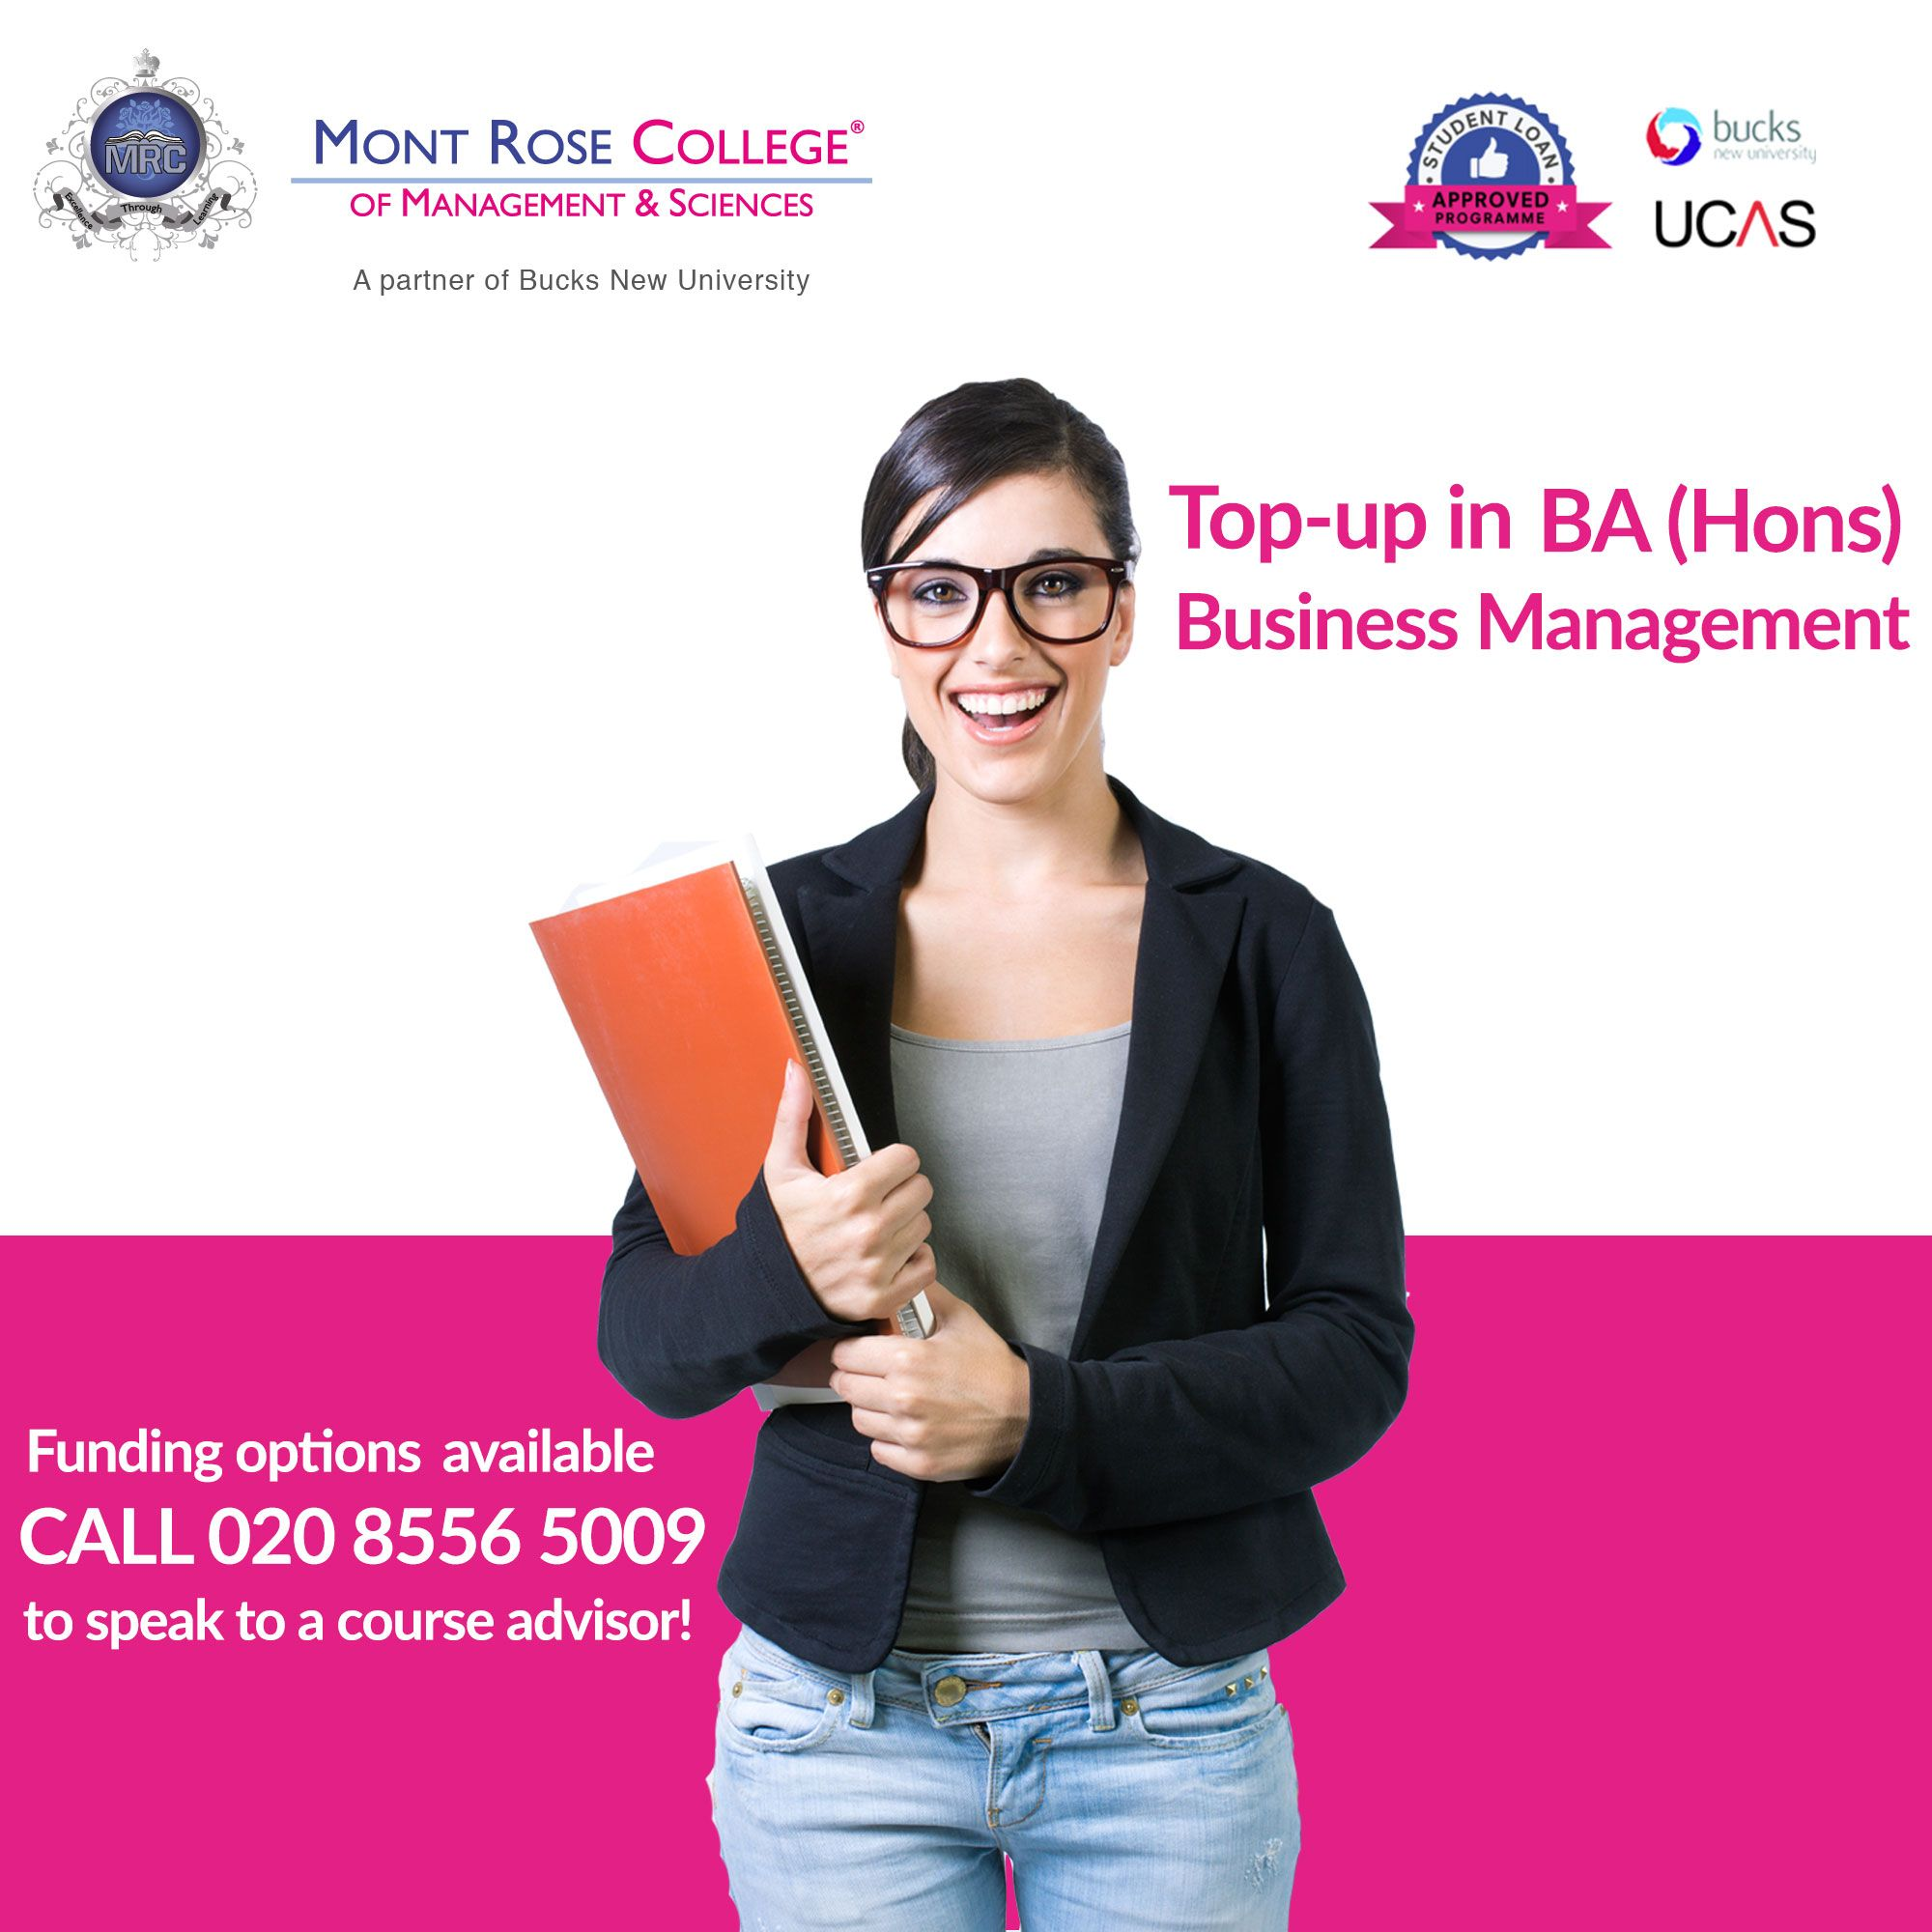 Mont Rose College of the Management and Sciences offers BA